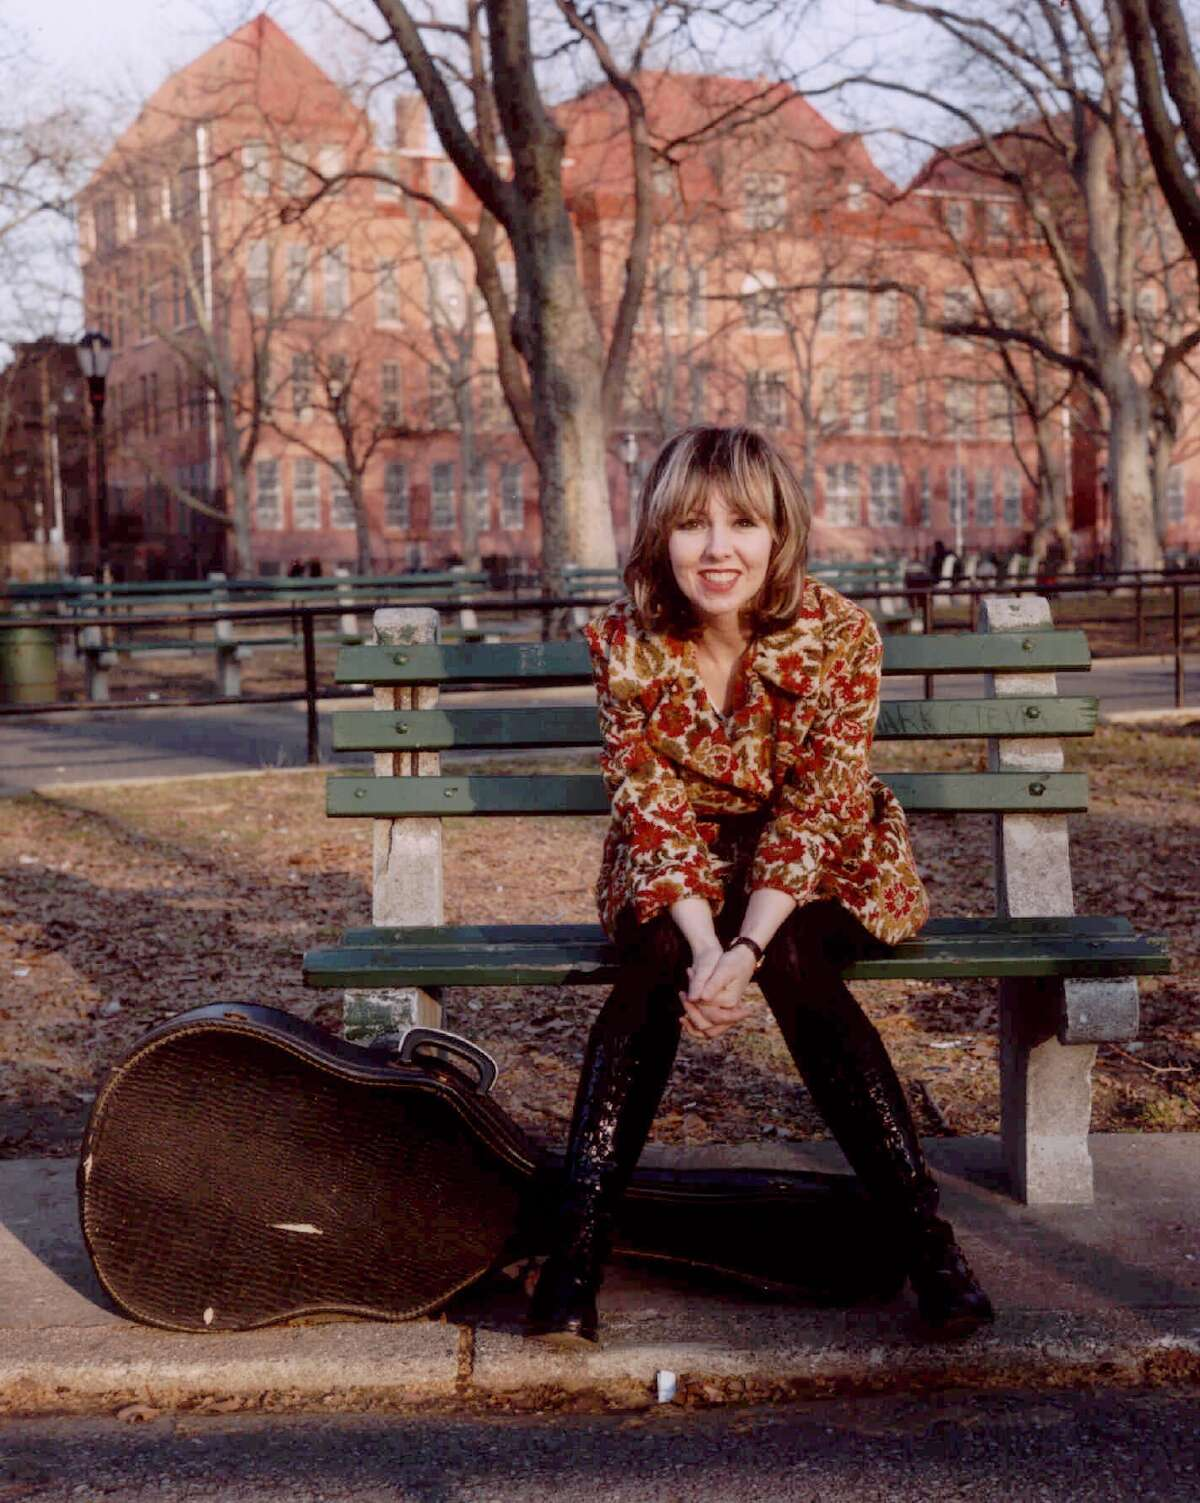 A Pittsburgh native, musician Amy Rigby moved to New York in the mid-'70s to attend Parsons School of Design. She soon found herself drawn to the city's music scene.